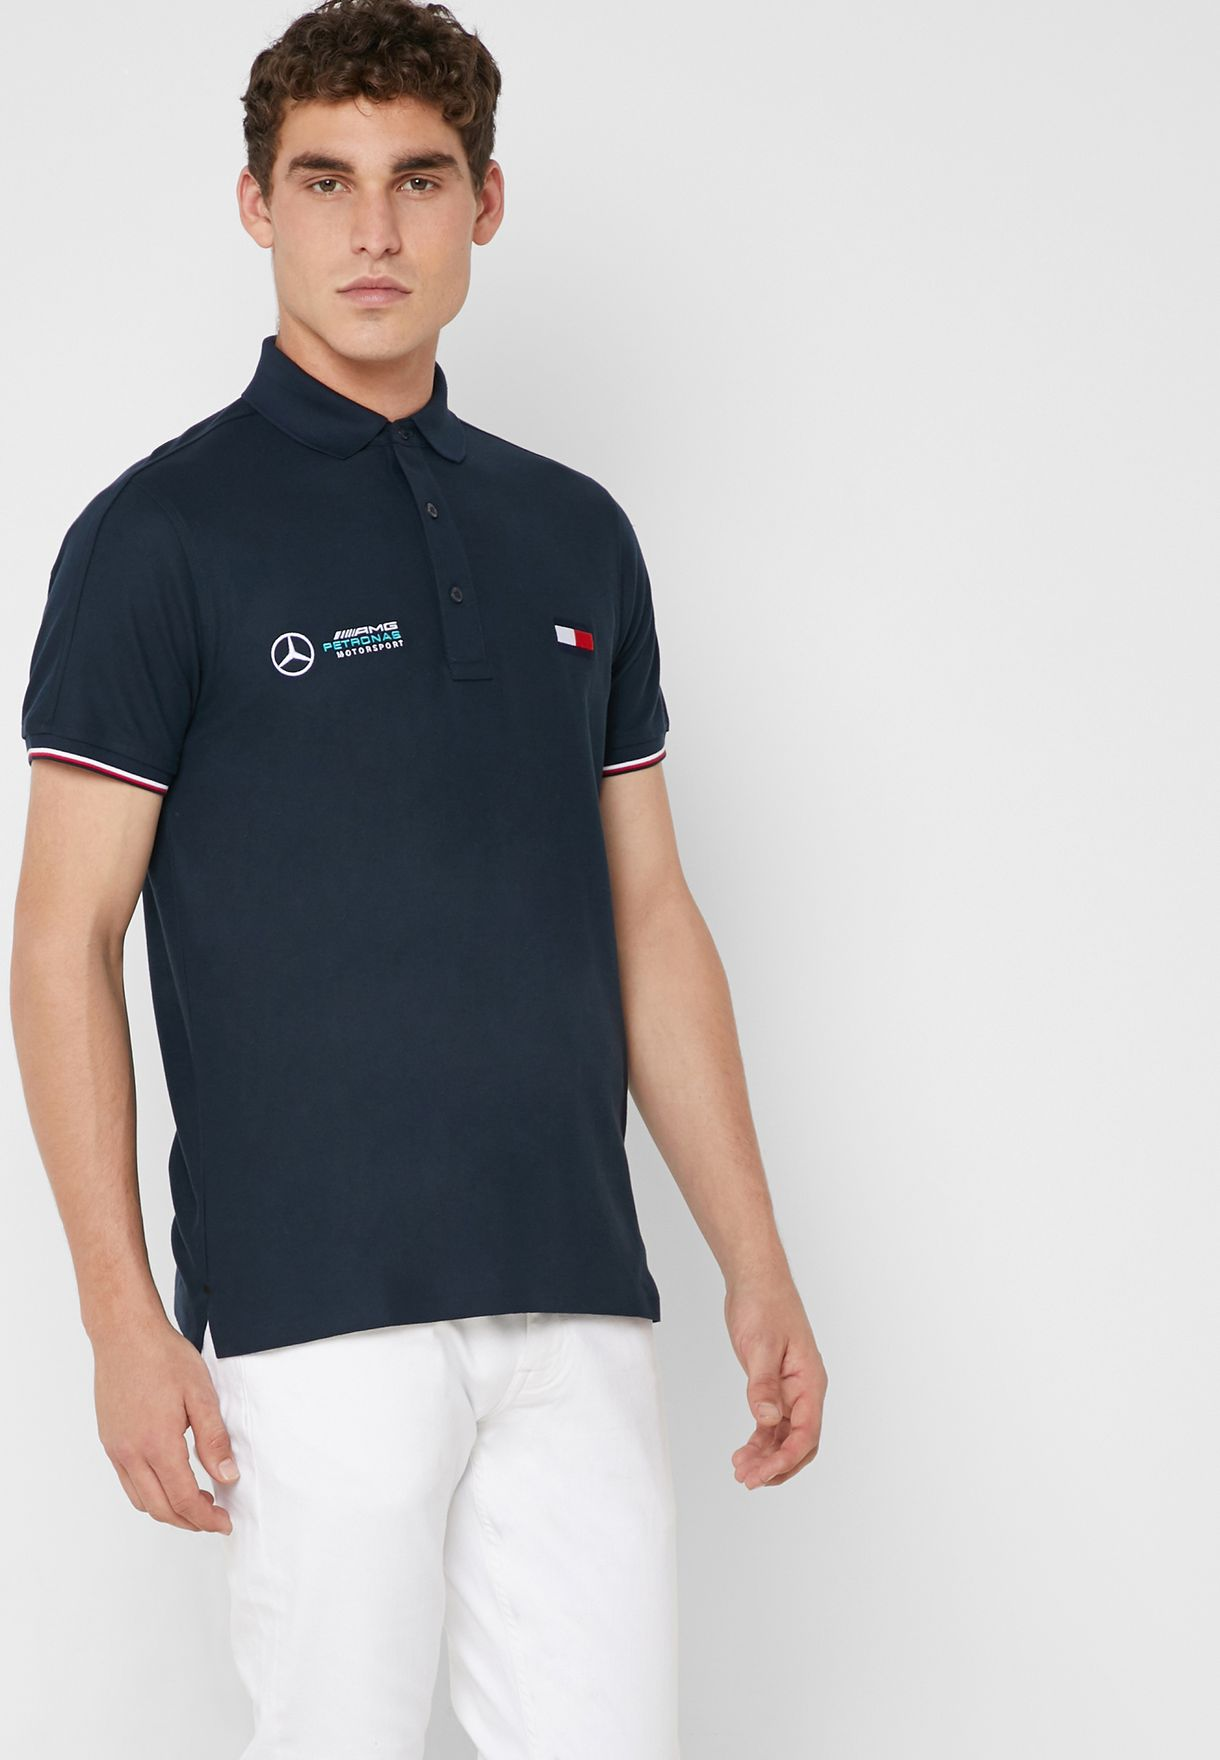 cda2e3fd Shop Tommy Hilfiger navy Mercedes Benz Essential Logo print Polo ...